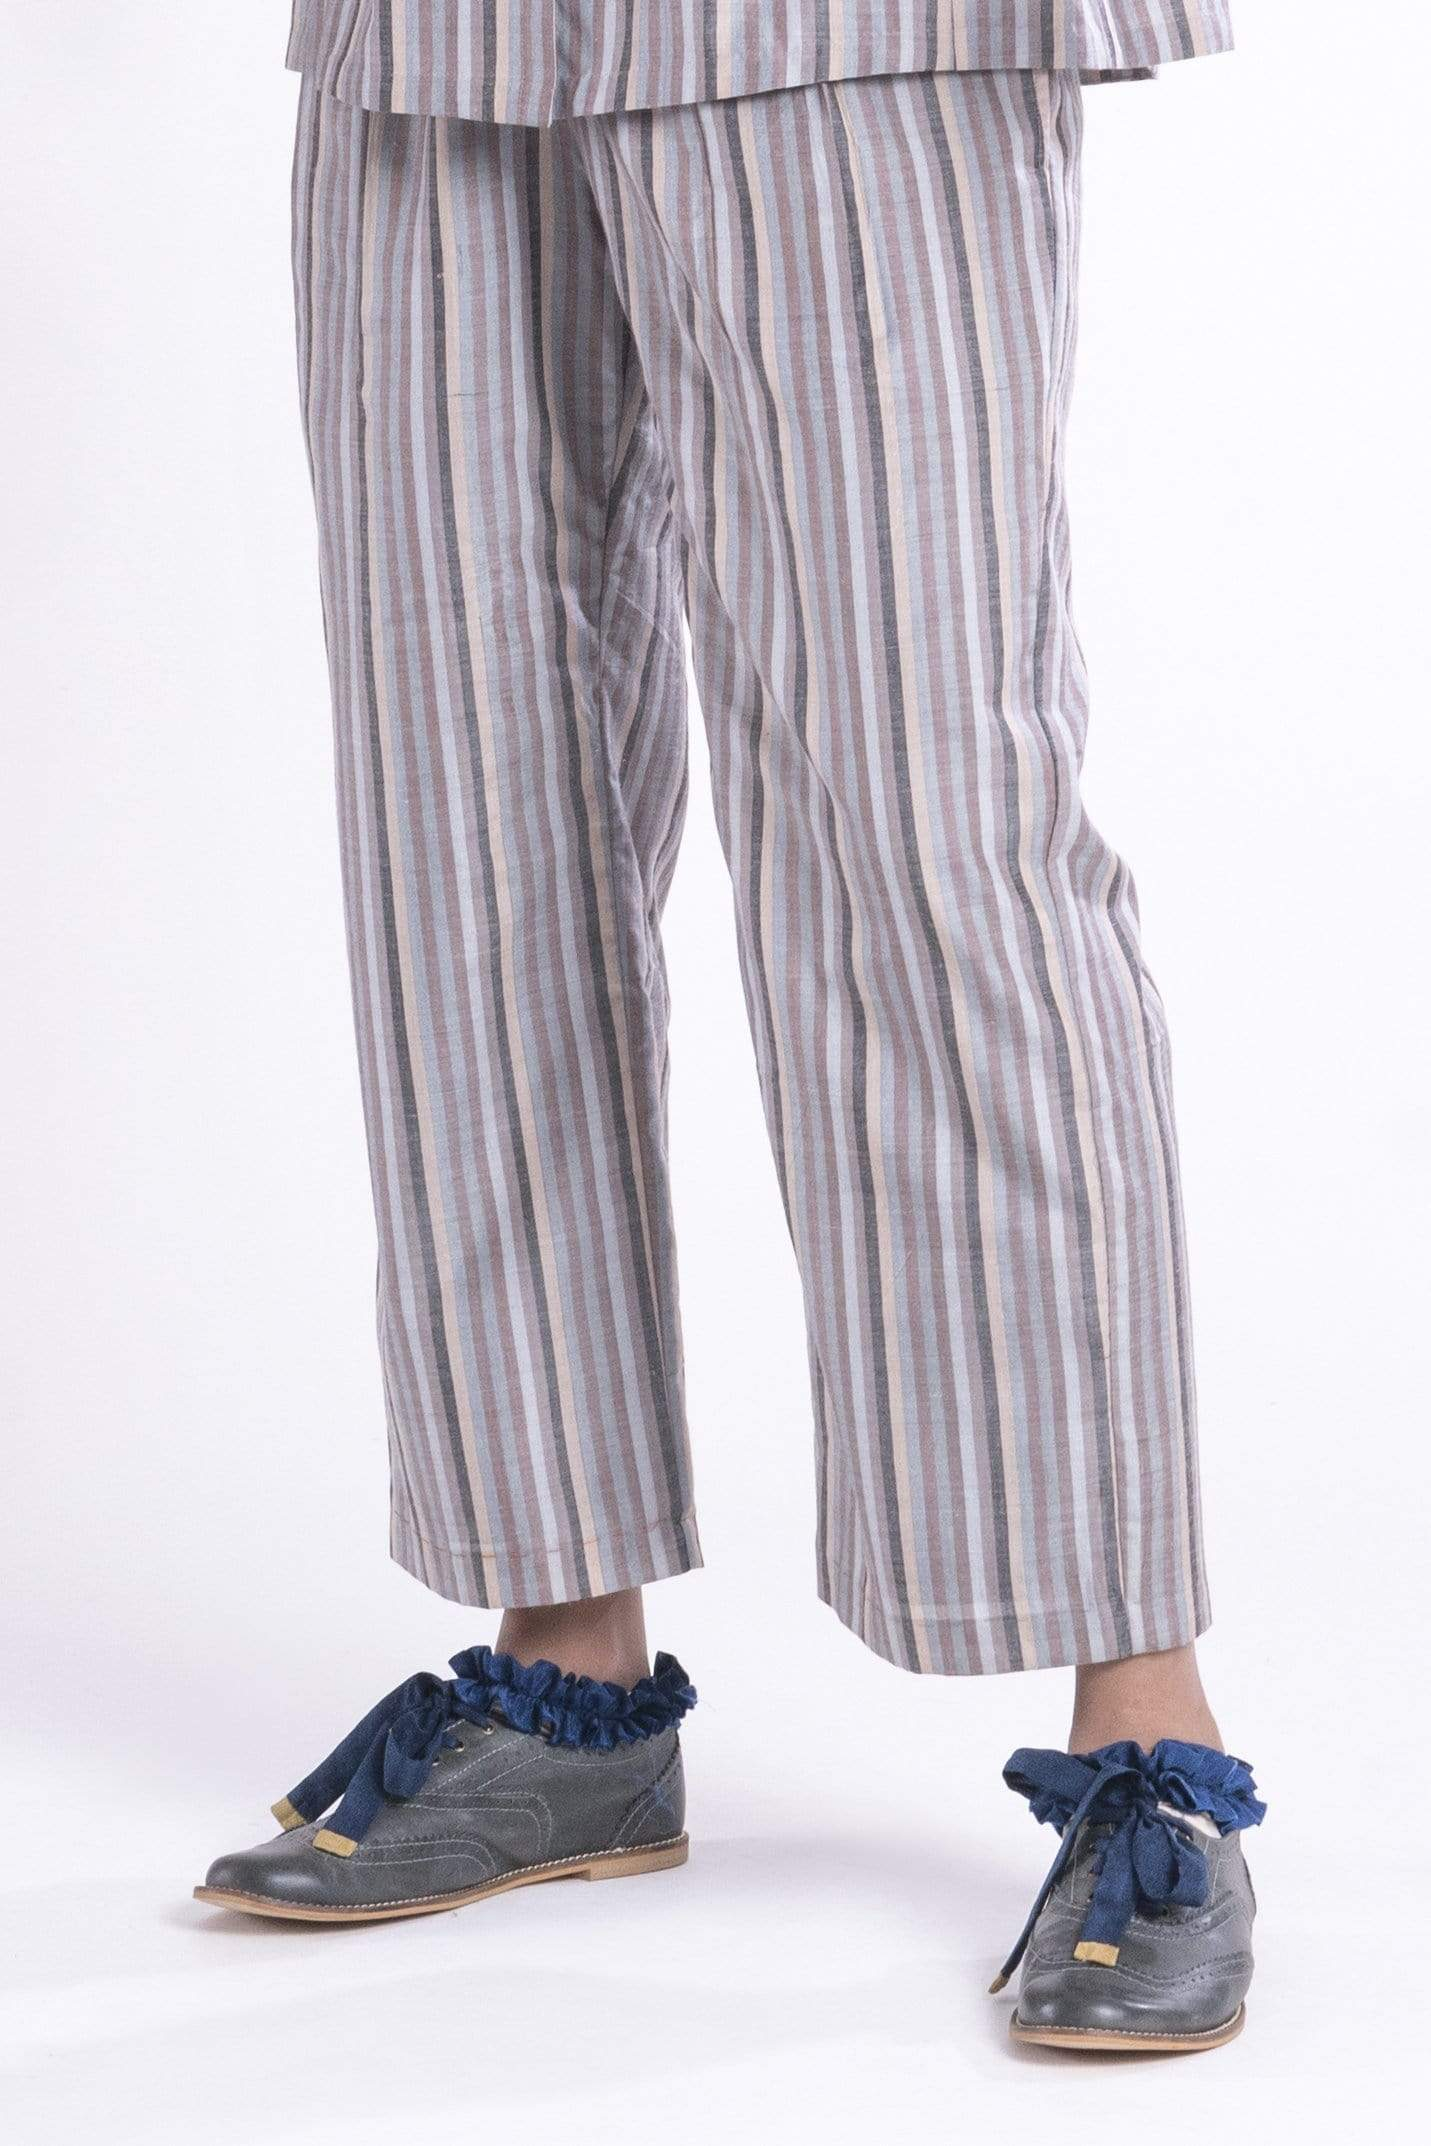 Anavila Bottoms Apricot striped trousers